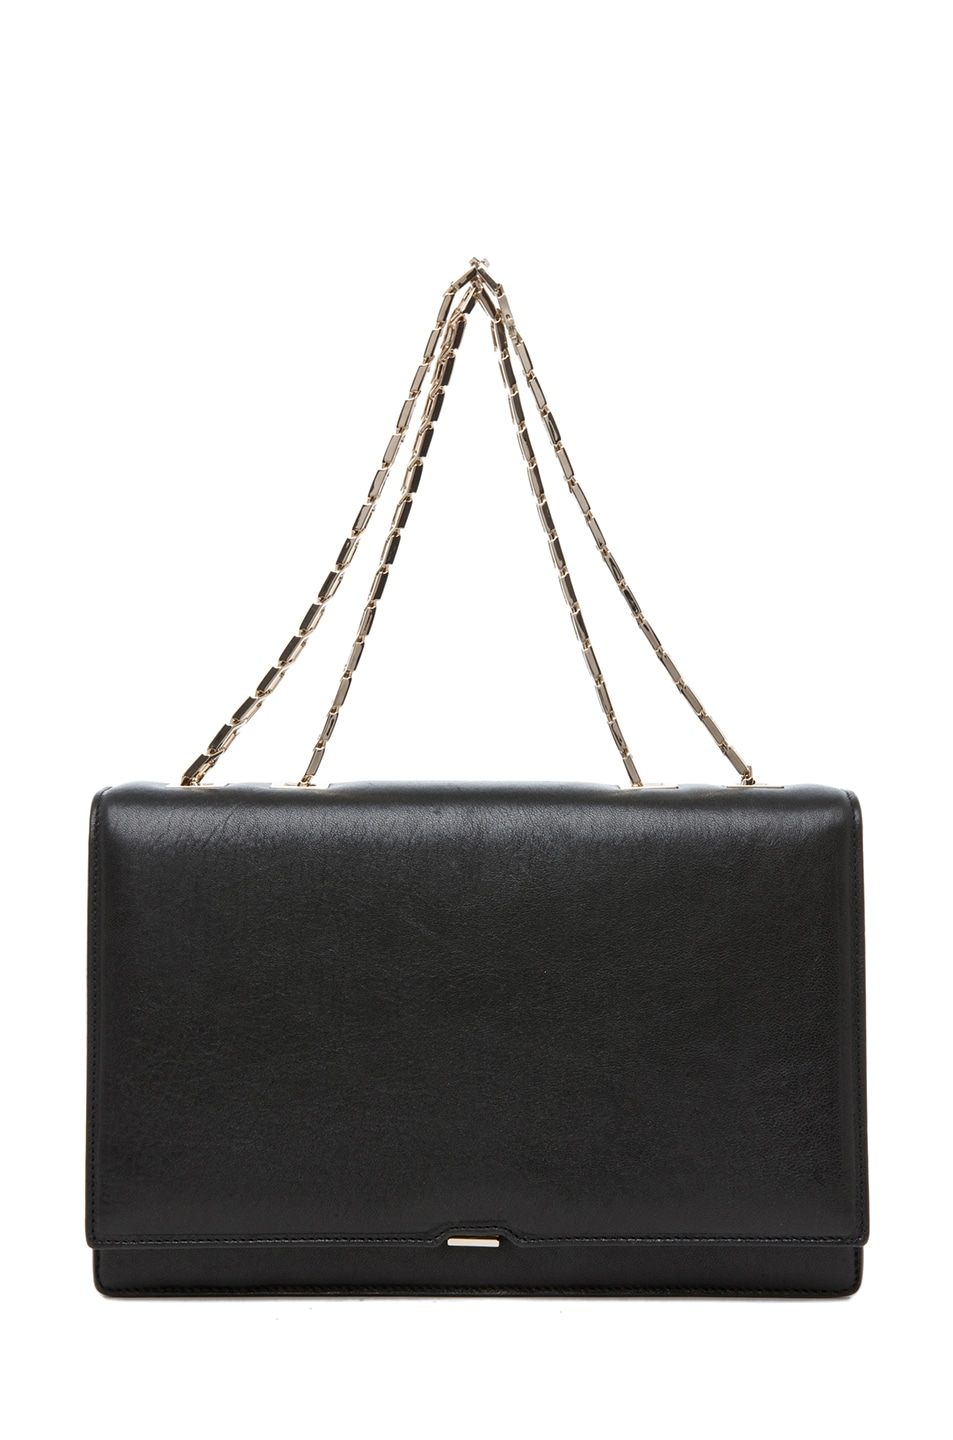 Image 1 of Victoria Beckham Hexagonal Chain Bag in Black